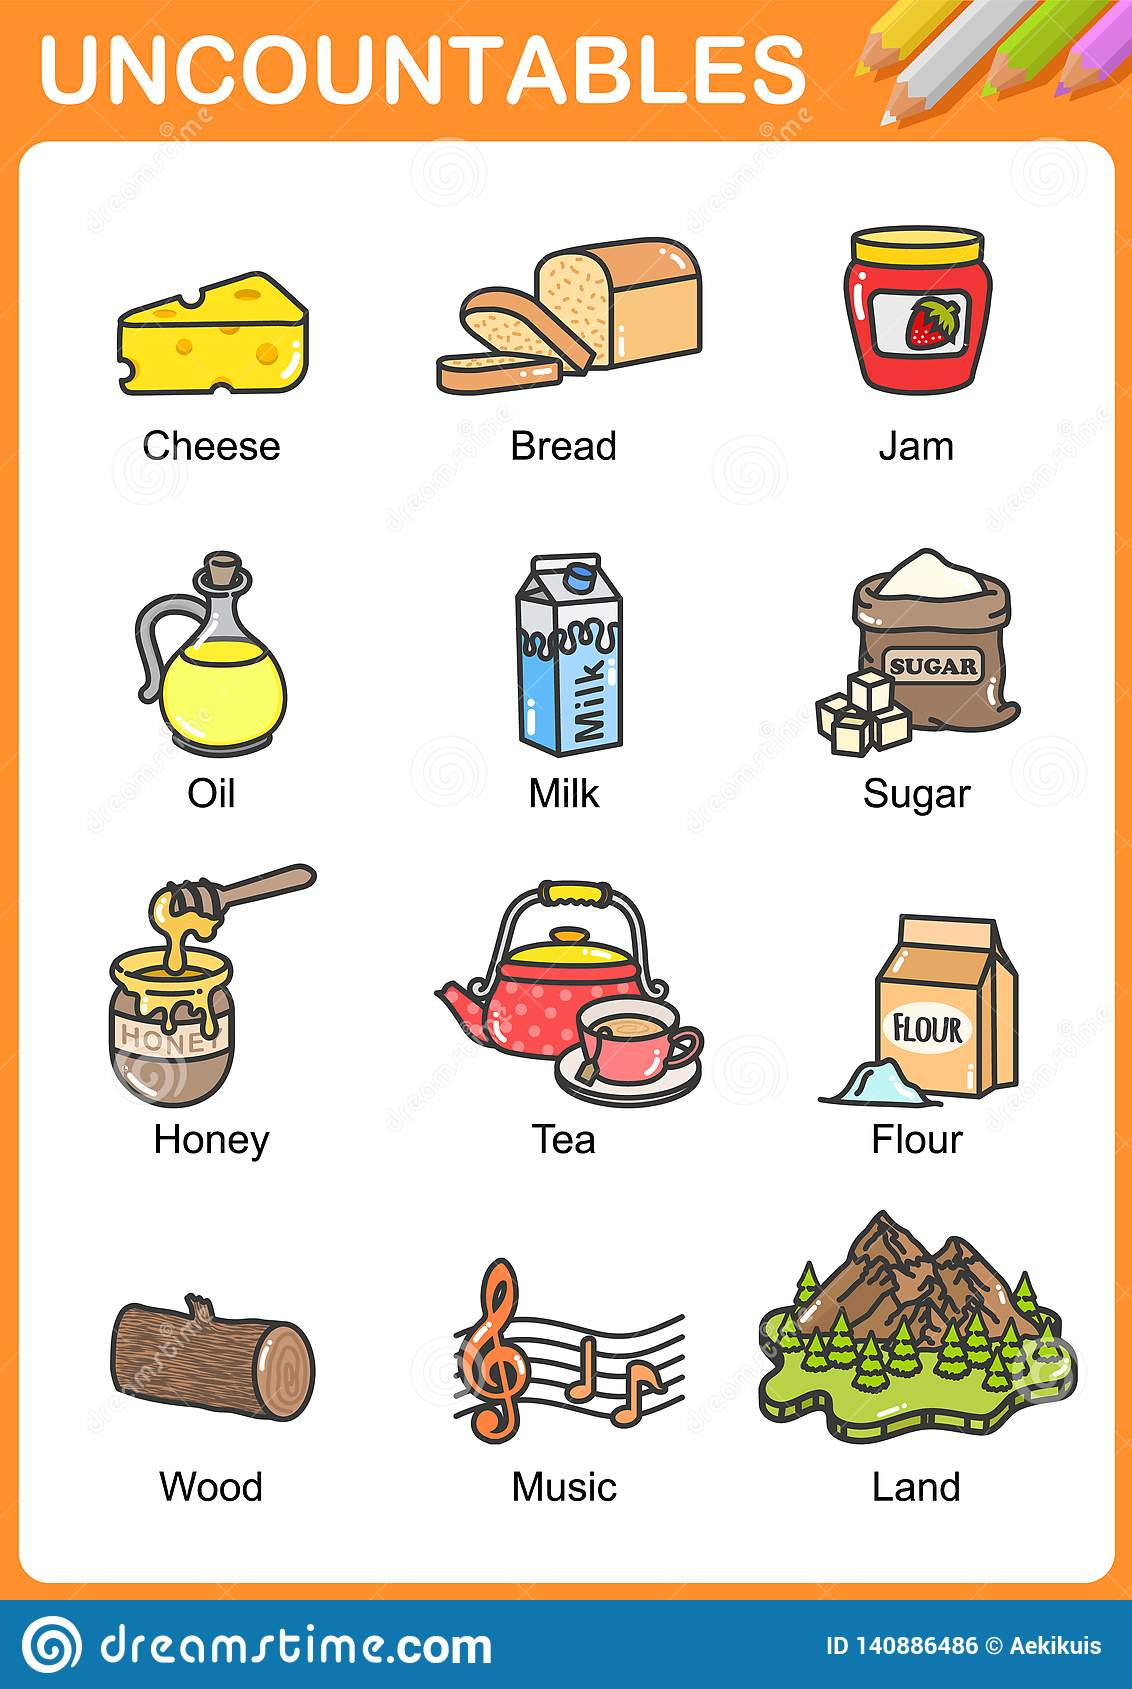 Nouns The Can Be Countable And Uncountable Stock Vector ... on possessive nouns worksheets, types of nouns worksheets, proper nouns worksheets, countable nouns elementary, modified nouns worksheets, countable uncountable nouns english, countable nouns list, nouns and verbs worksheets, count and noncount nouns worksheets, animals nouns worksheets, plural nouns kindergarten worksheets, countable uncountable nouns games, finding common nouns worksheets, mass and count nouns worksheets, countable nouns examples, nouns cut and paste worksheets, gender nouns worksheets,